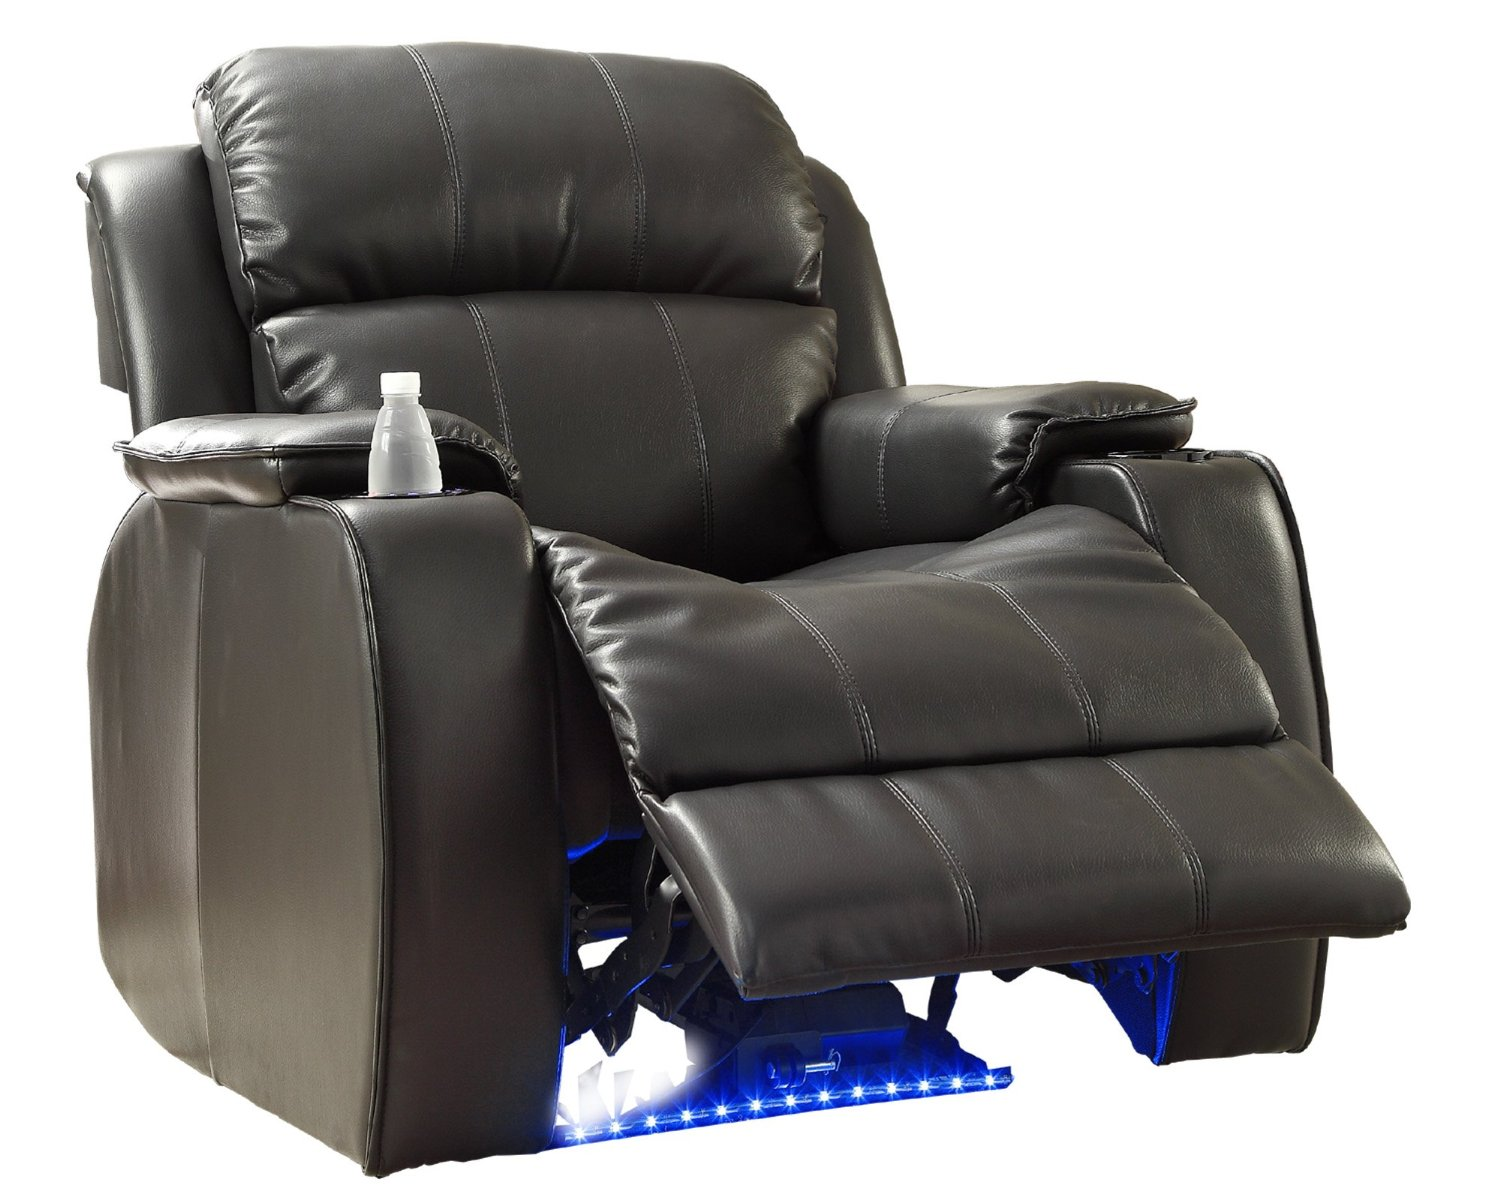 sc 1 st  Best Recliners : mini recliner chairs - islam-shia.org